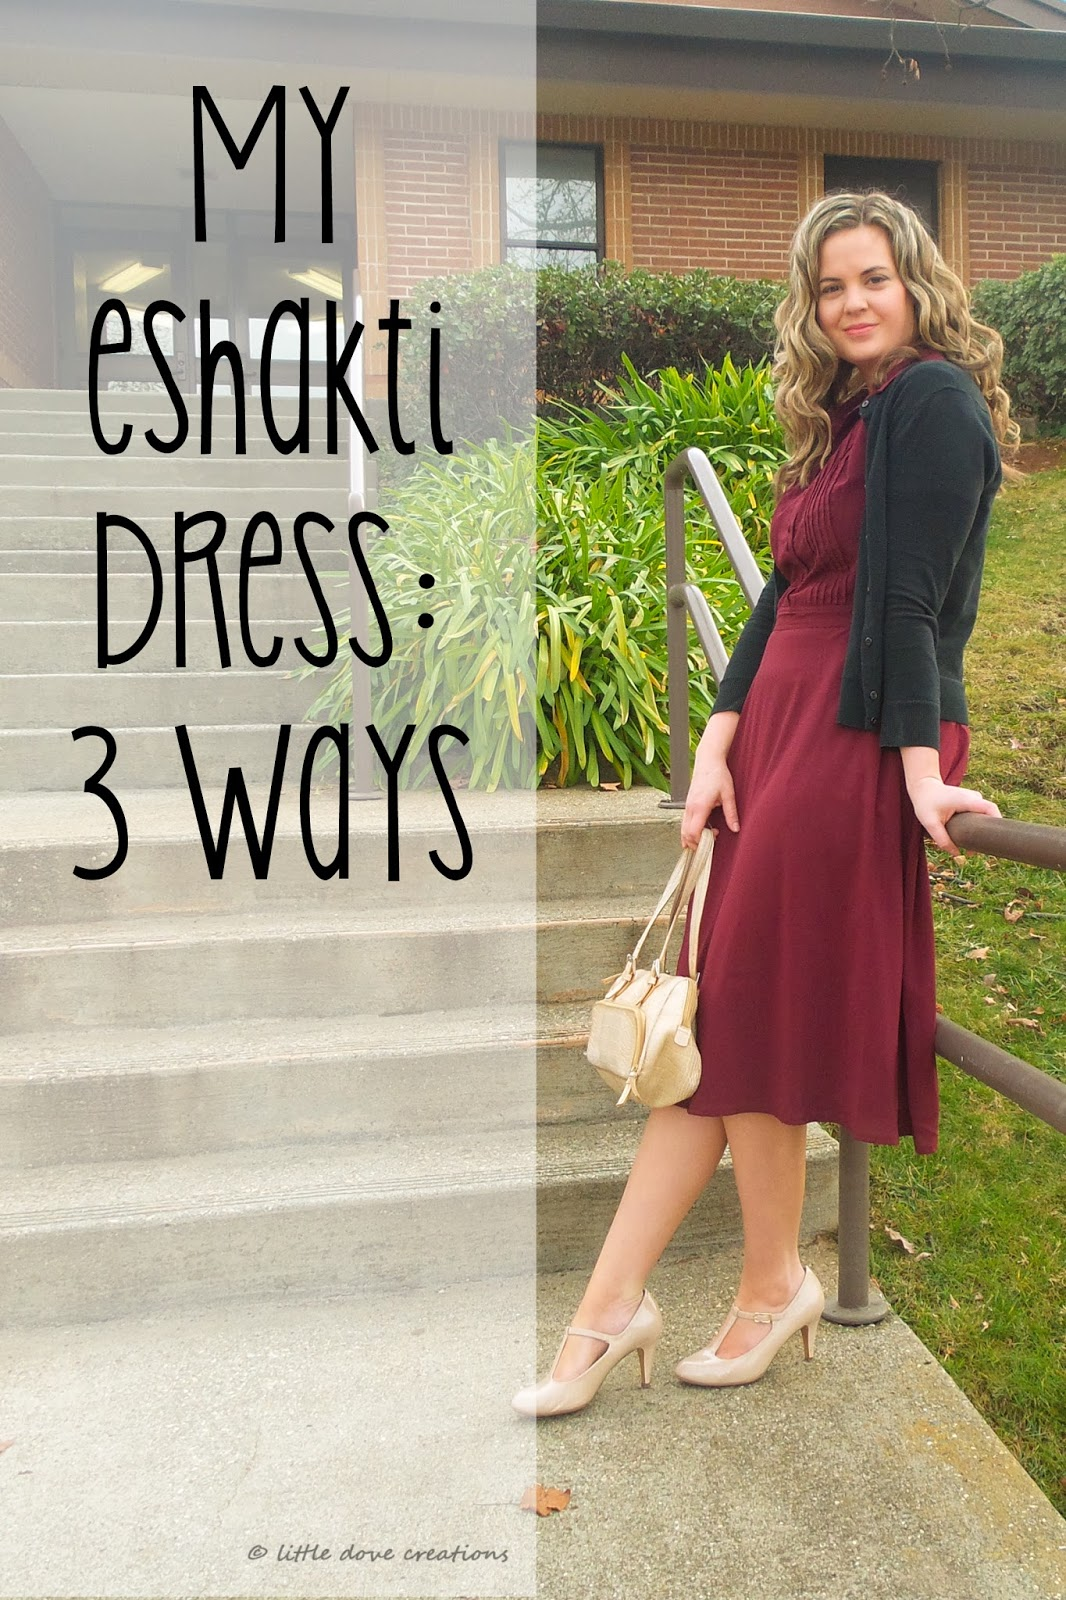 Eshakti dresses as worn by customer images